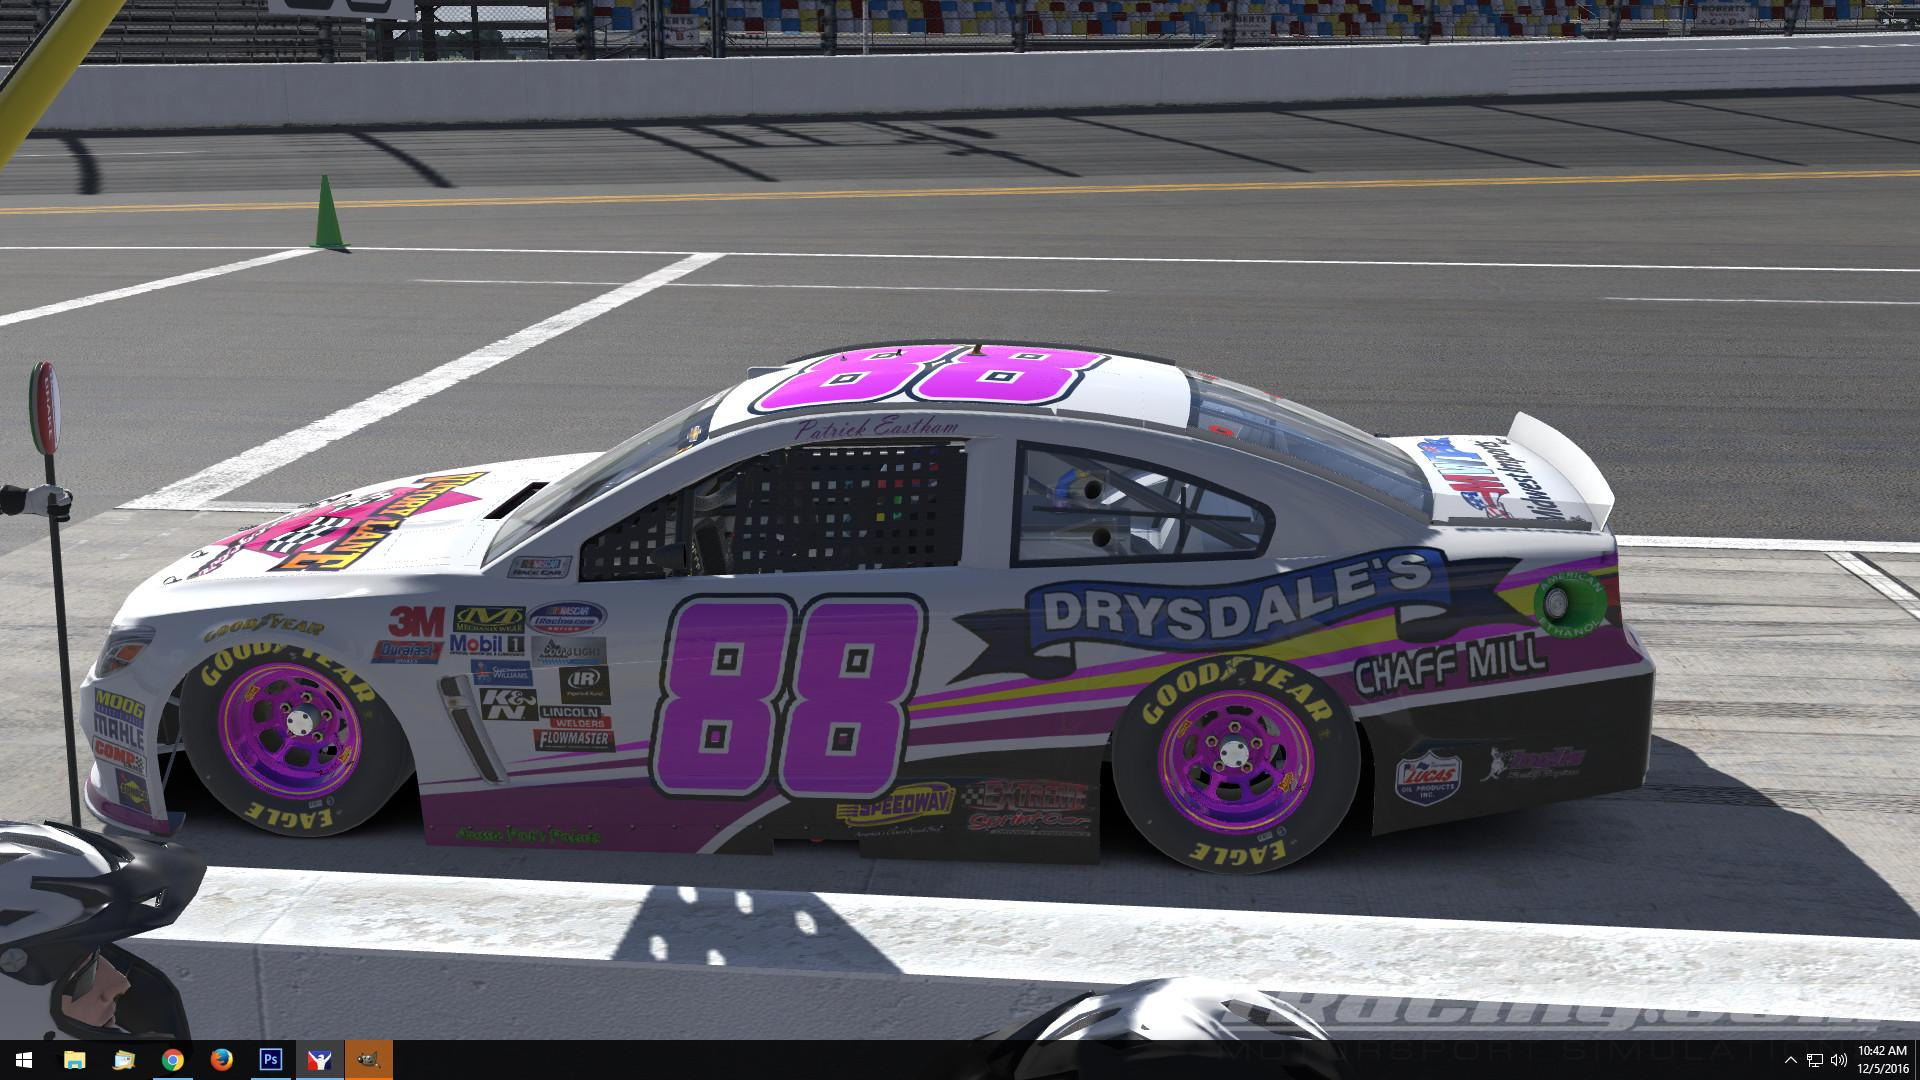 Victory lane racegear SS by Patrick Eastham - Trading Paints